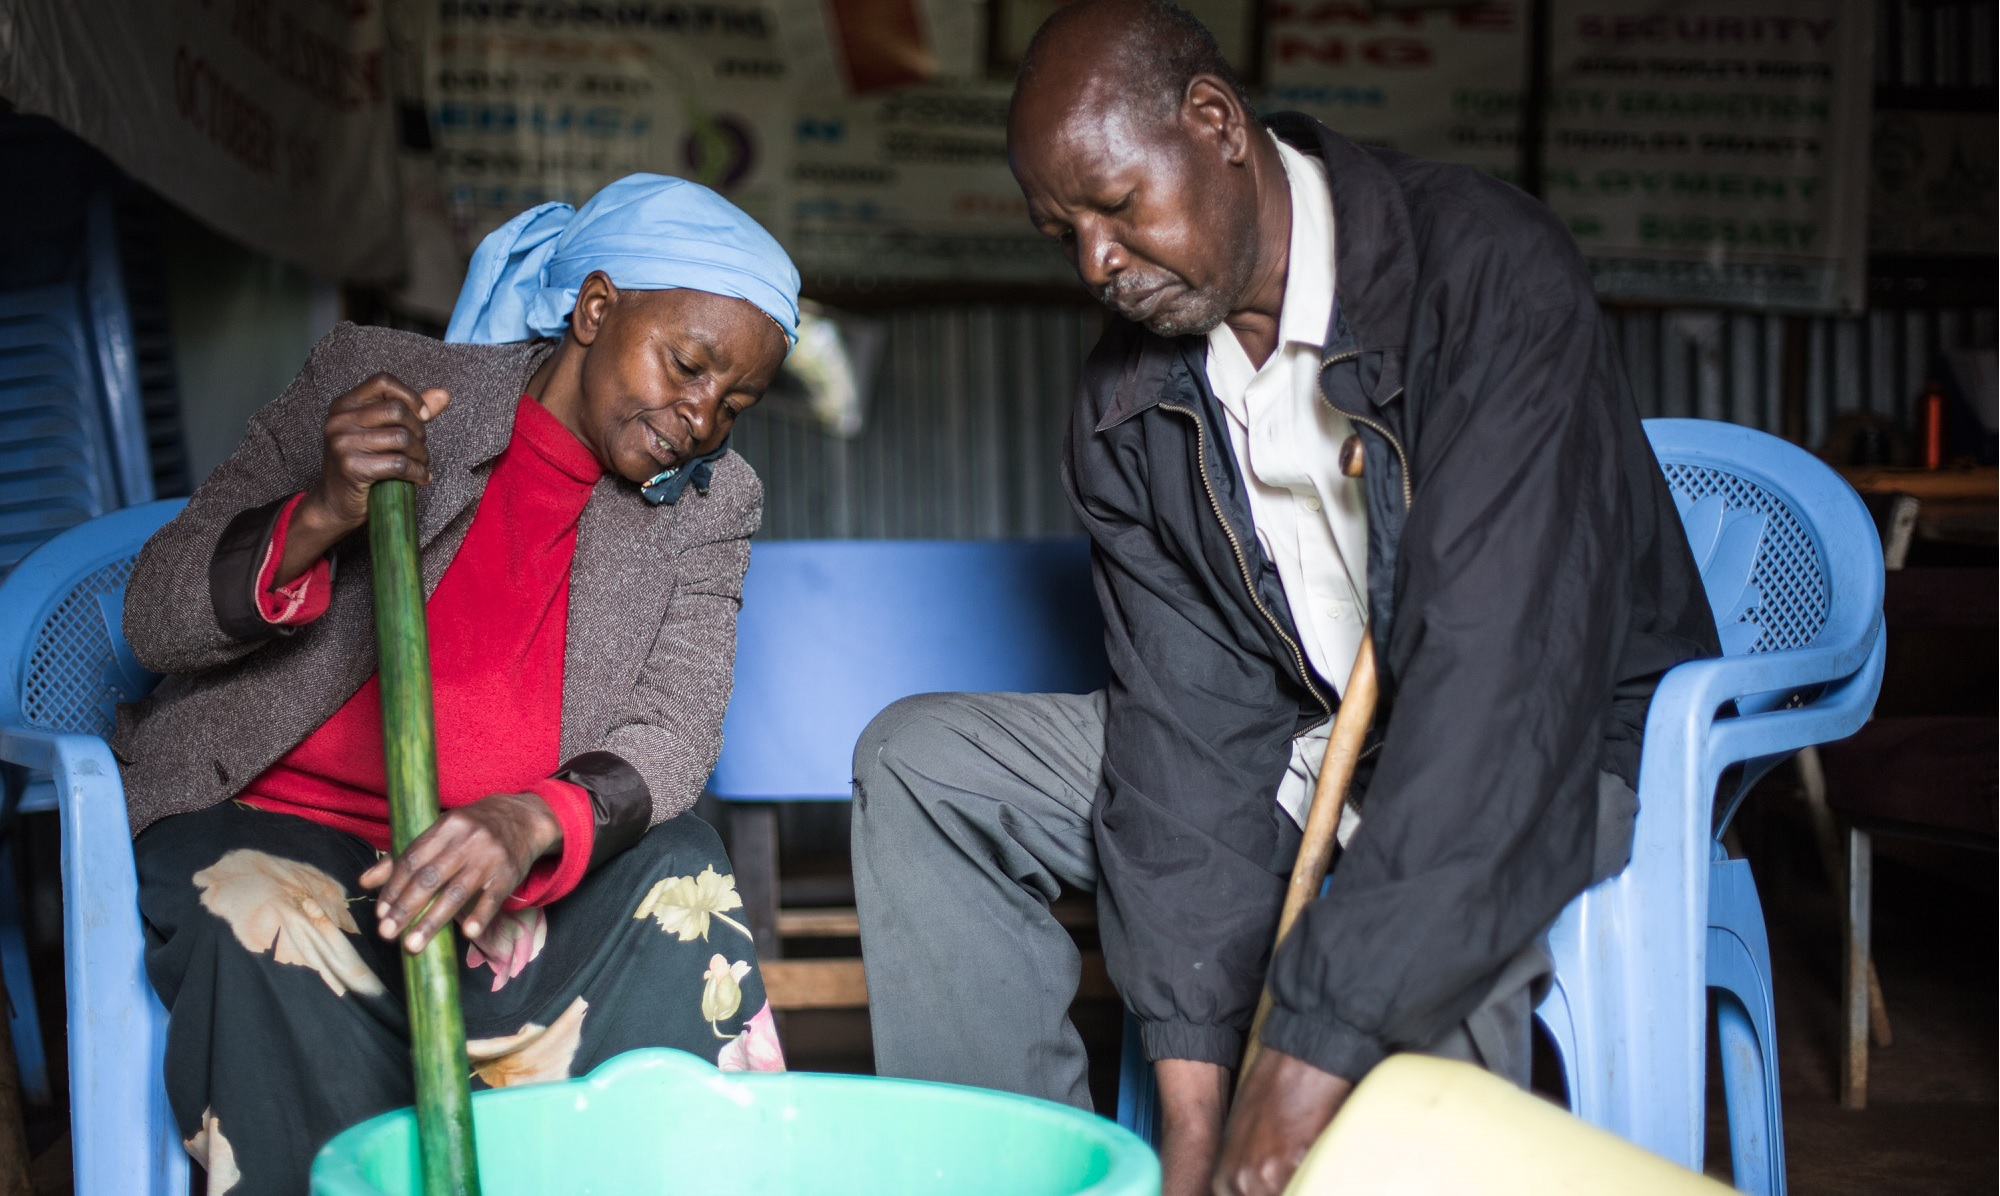 An older man and woman in Kenya make soap to sell - a way of ensuring they have an income (c) Benj Binks/HelpAge International